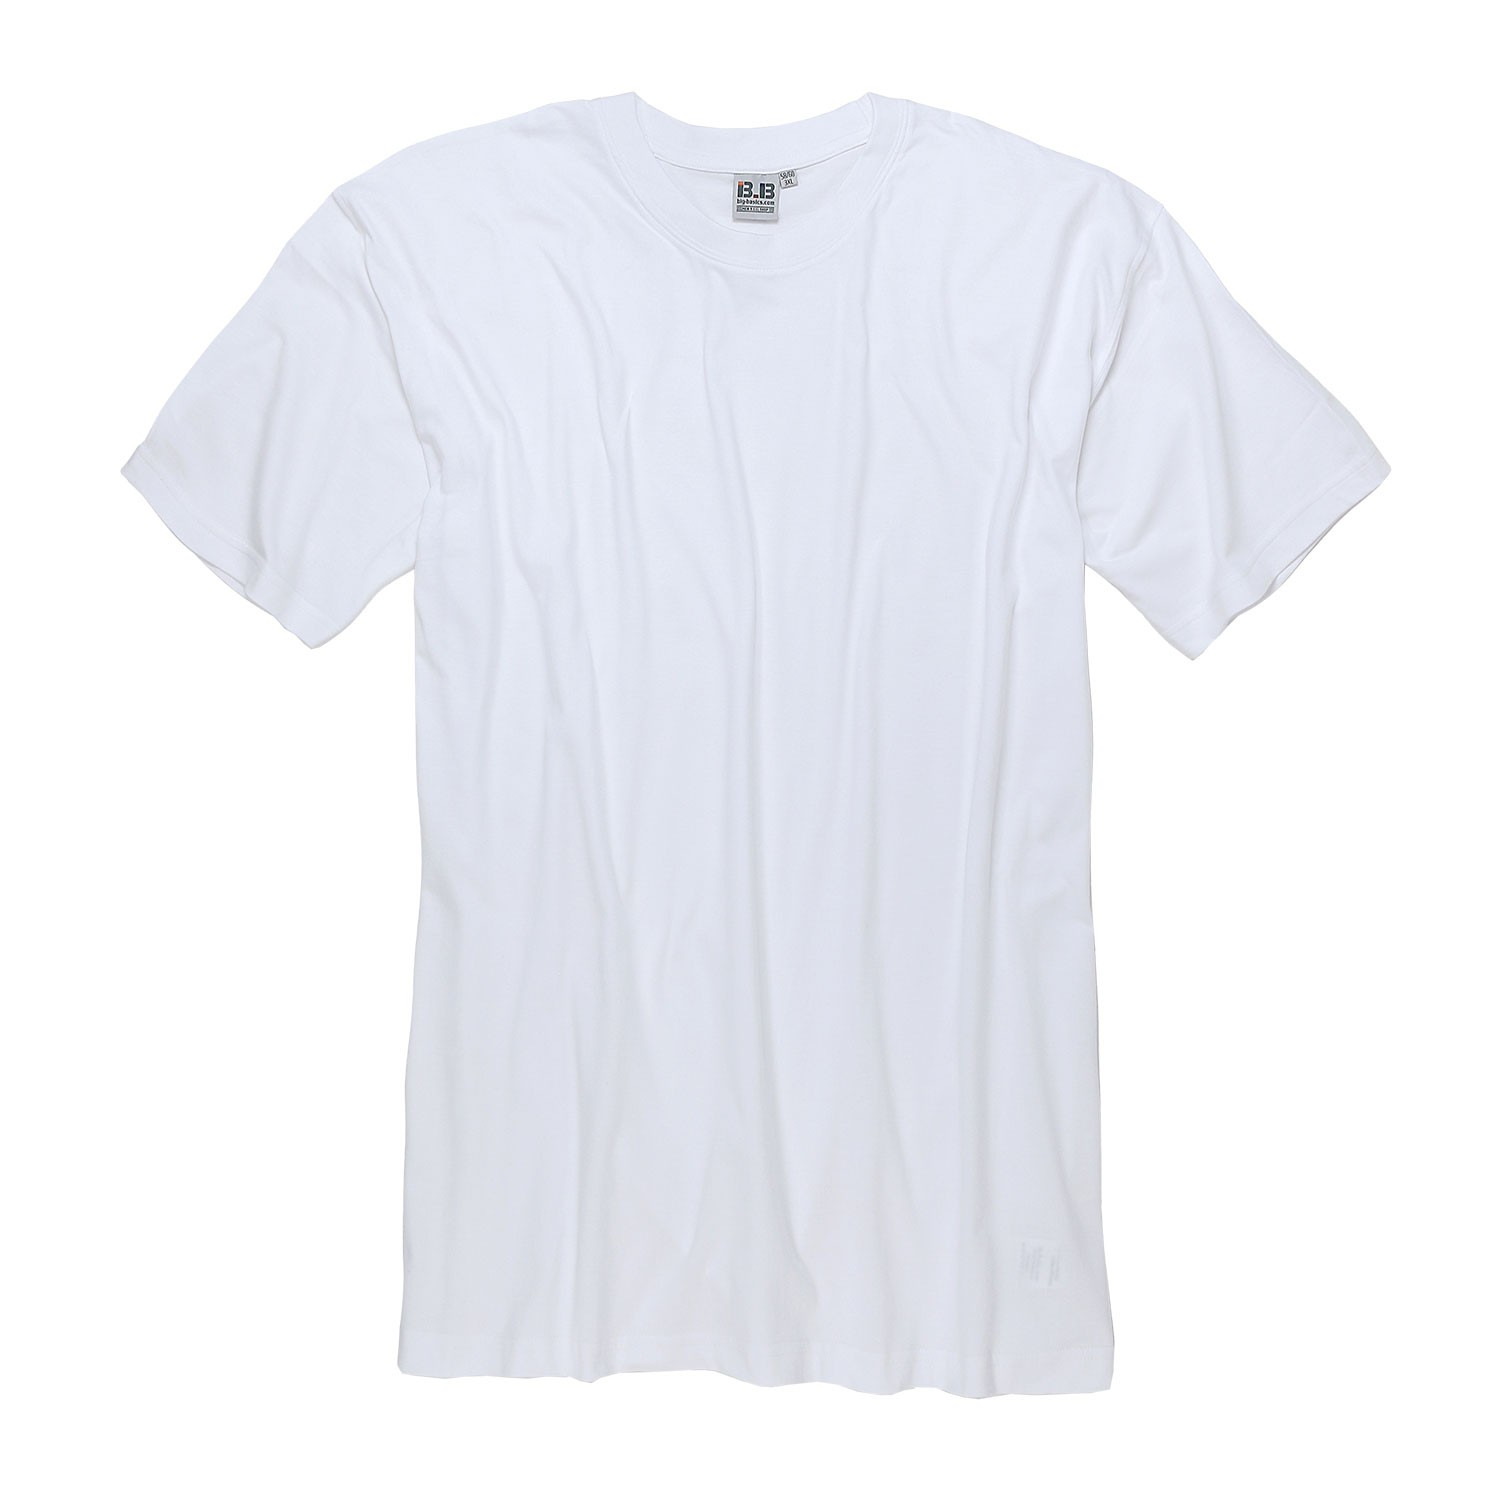 Detail Image to White double pack t-shirt by BigBasics up to kingsize 8XL